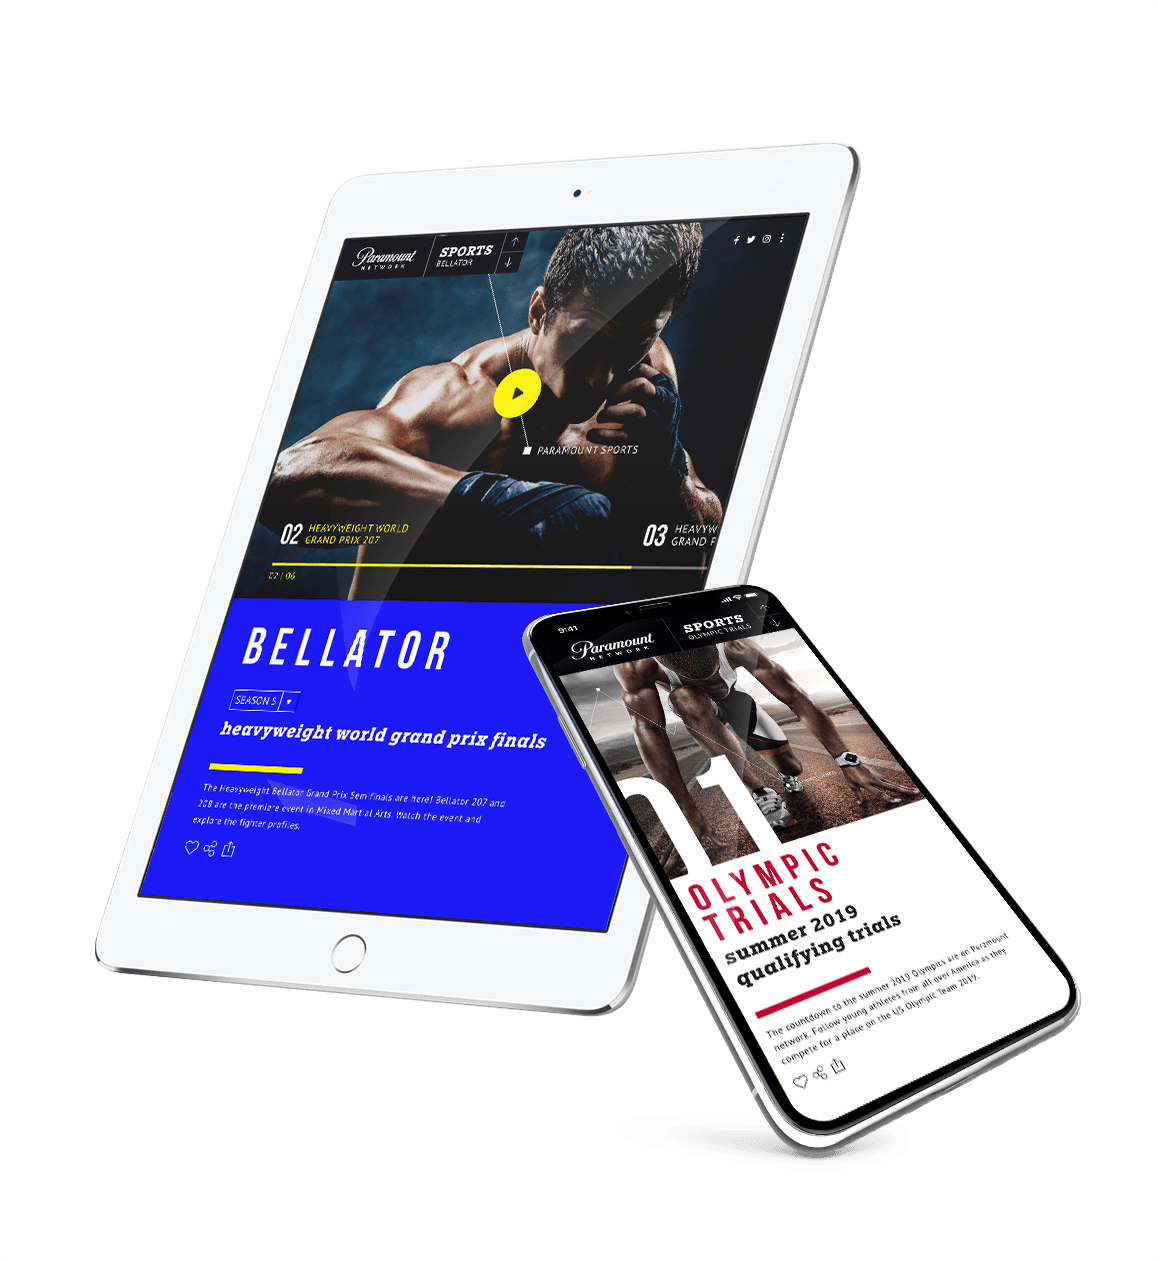 Paramount Network video app on a tablet and iPhone with Bellator Mixed Martial Arts and the Olympics